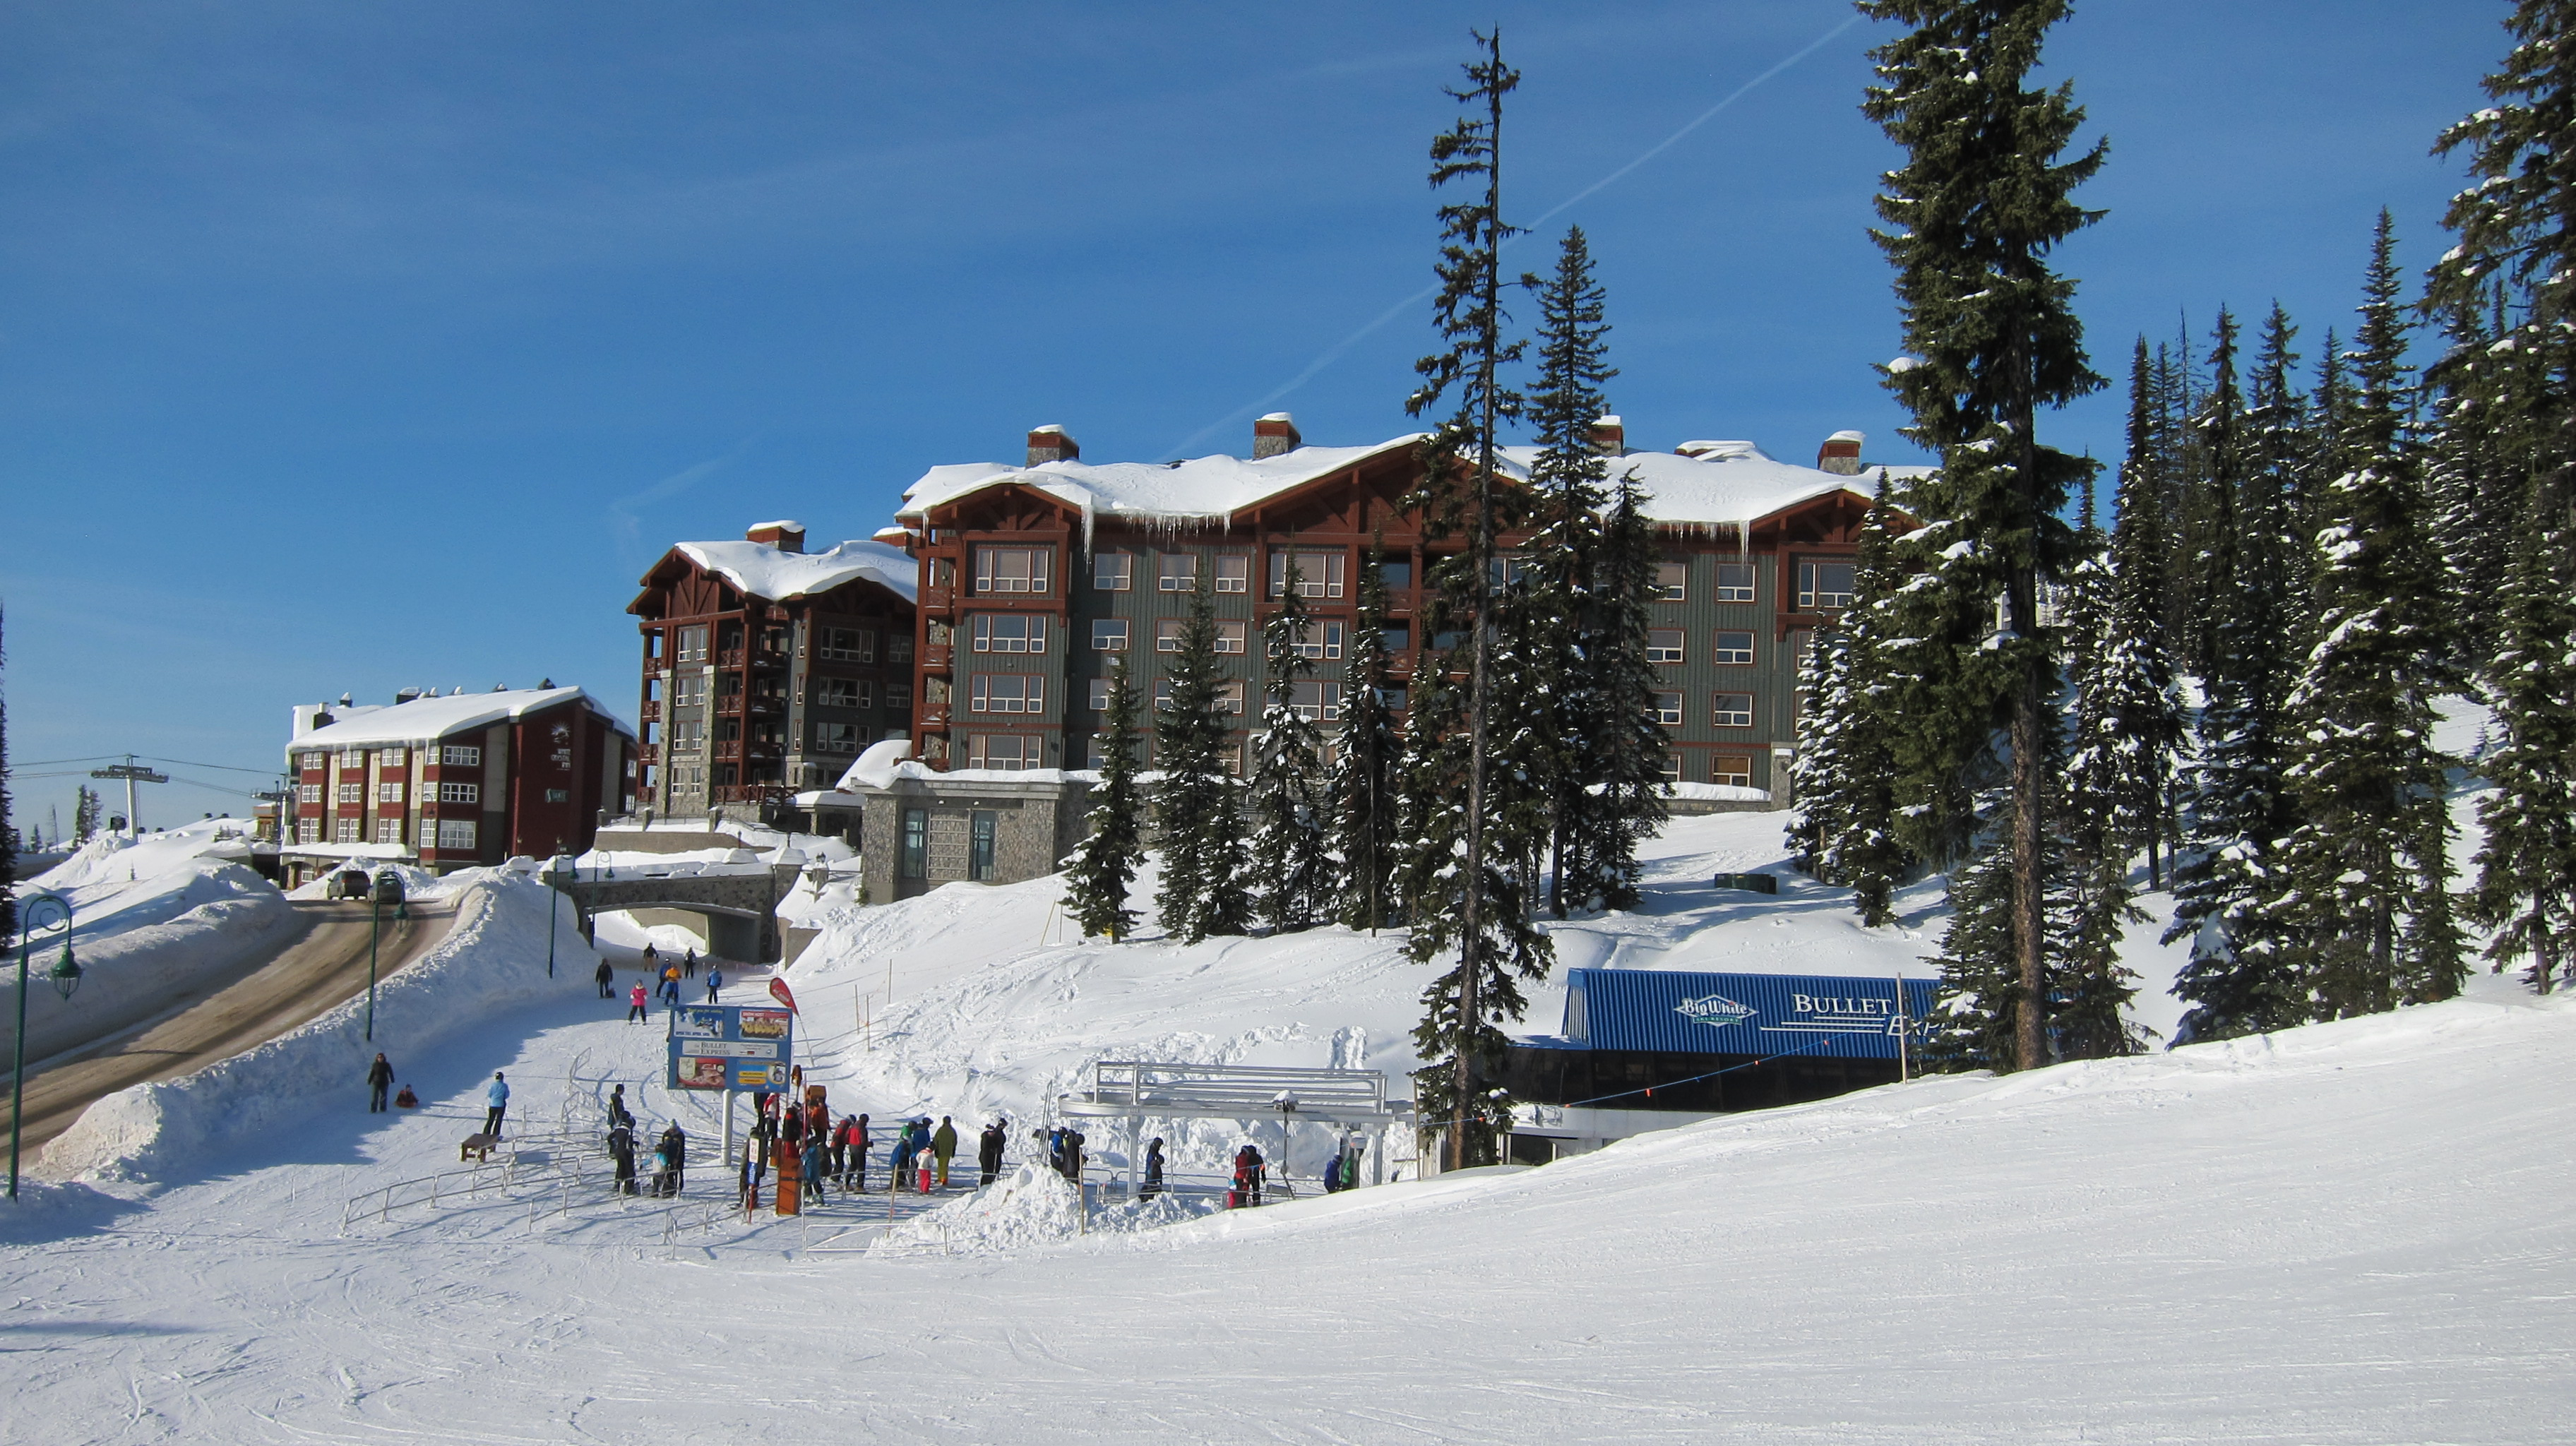 Stonebridge Lodge at Big White - ski in/ski out, next to the Bullet Chairlift